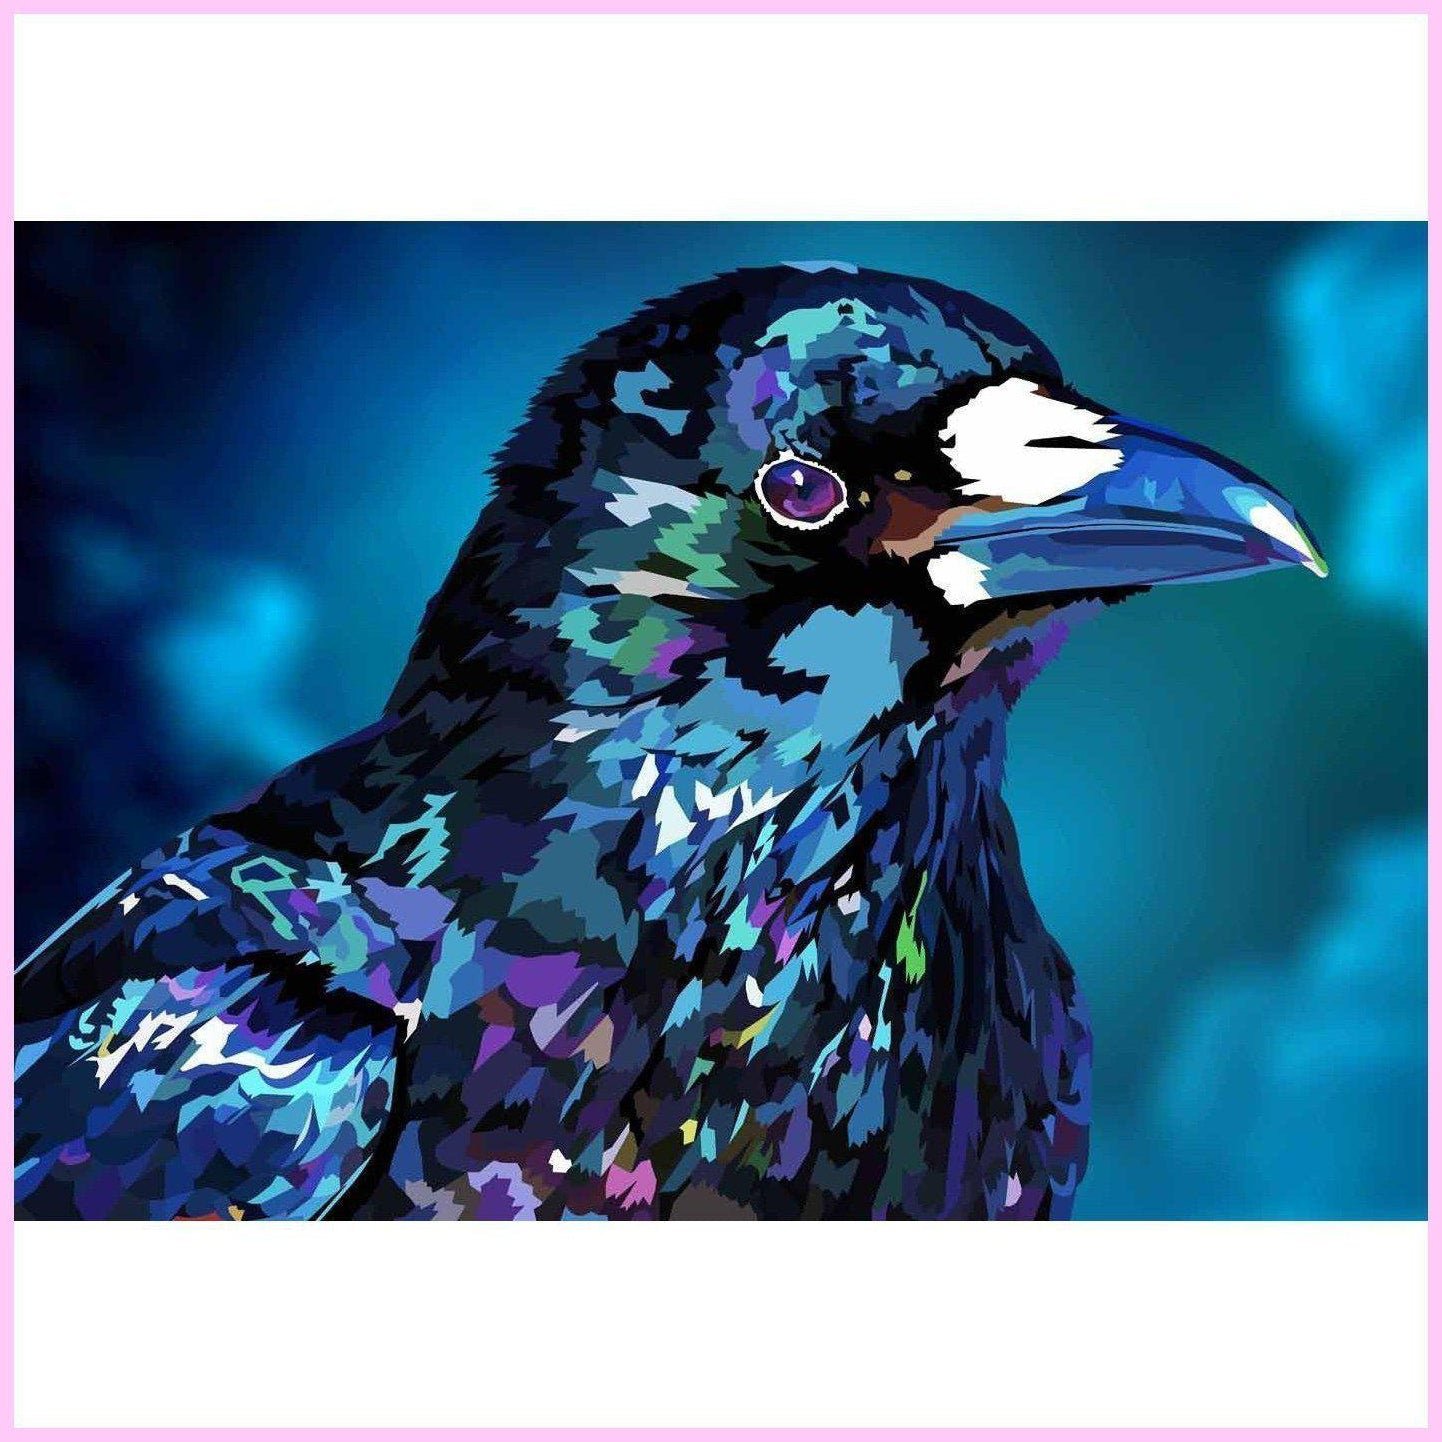 Diamond Raven-Diamond Painting Kit USPS-35x50cm (14x20 in)-Square-Heartful Diamonds